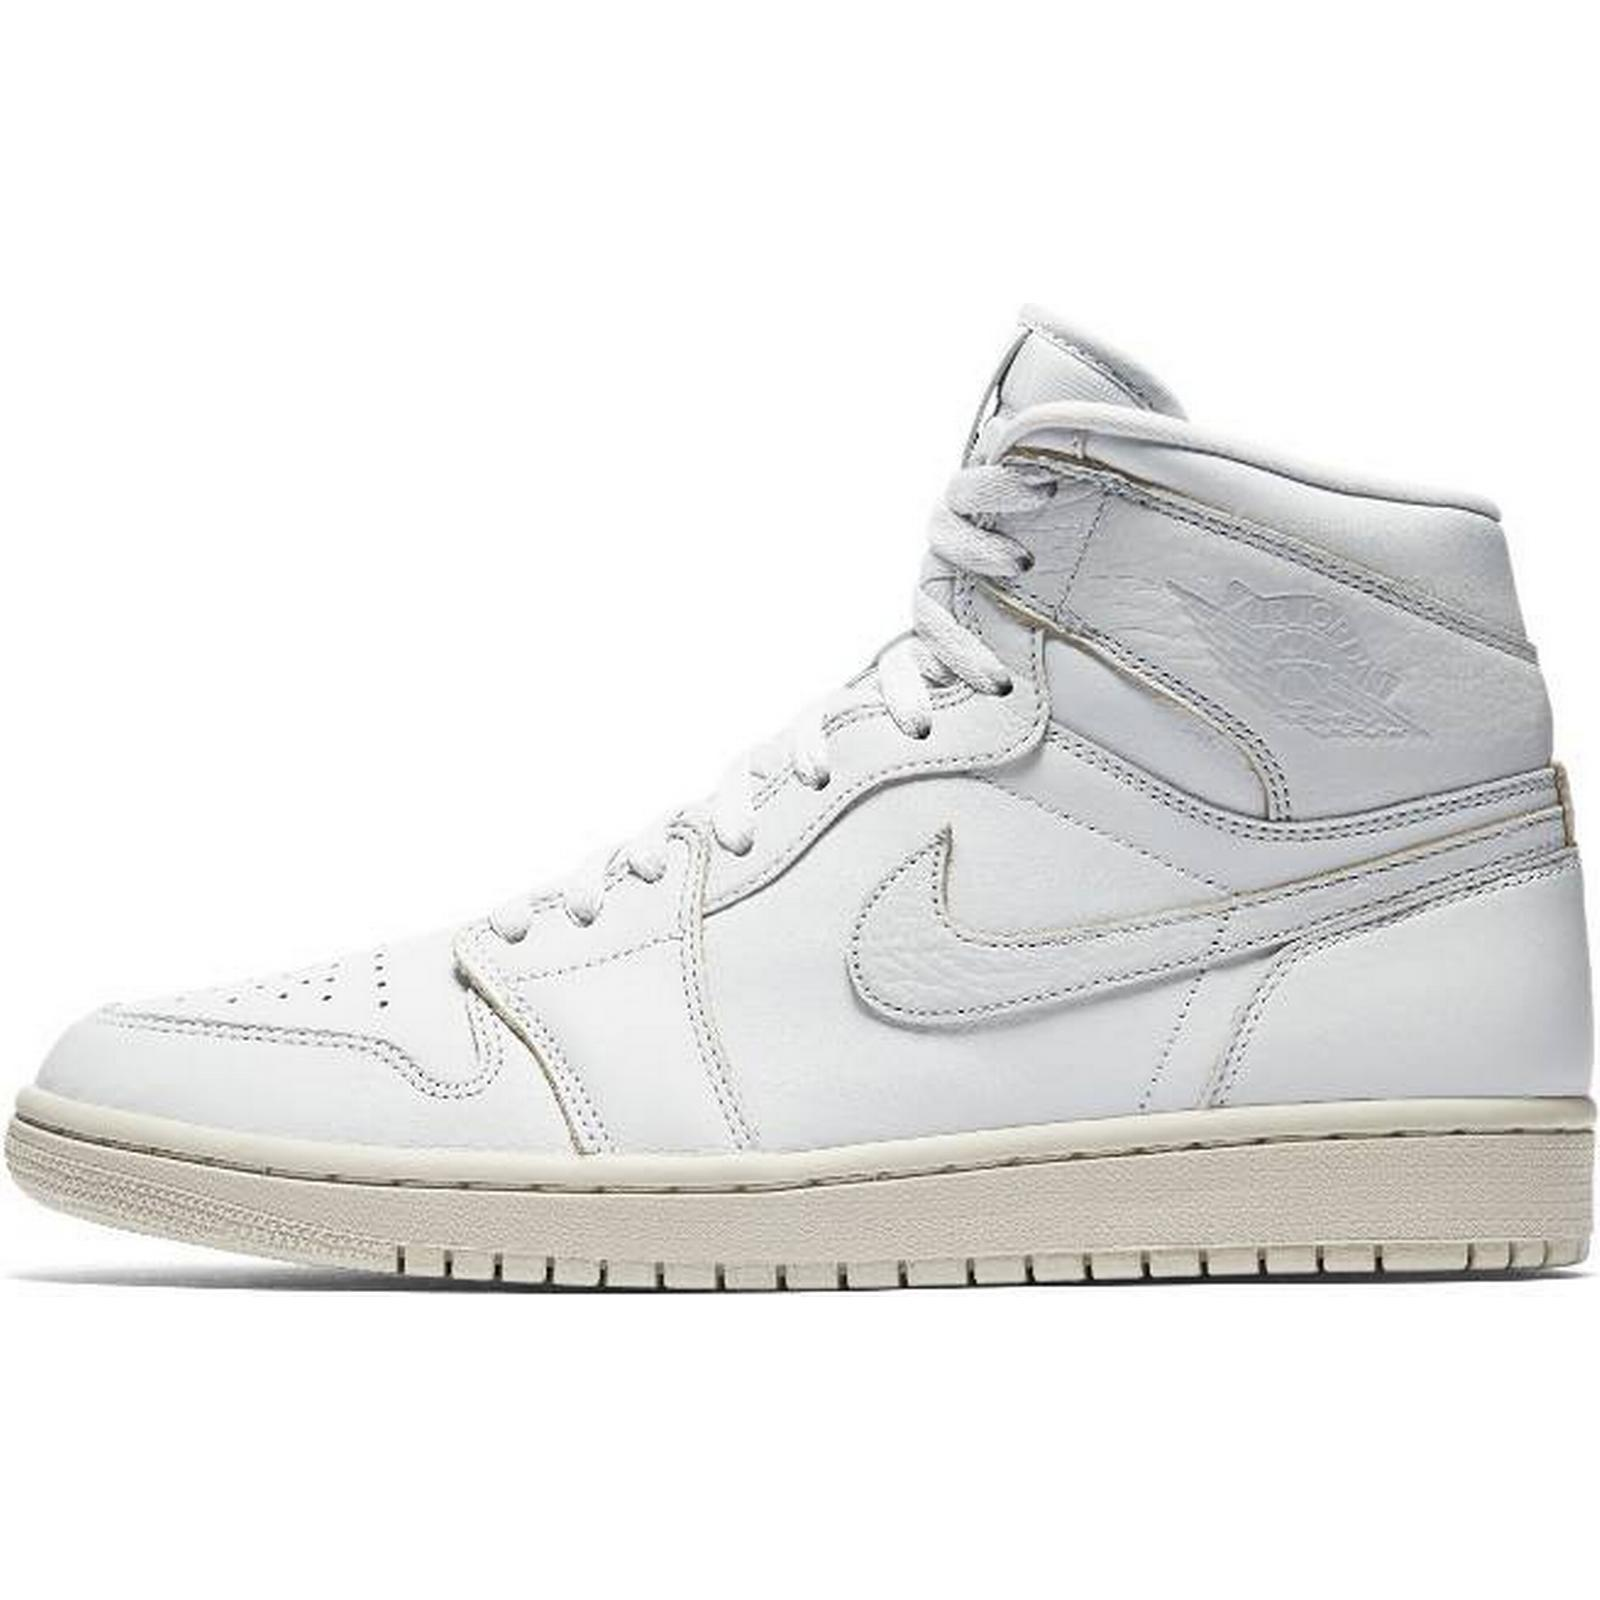 Gentleman/Lady : NIKE Buty Retro Męskie Air Jordan 1 Retro Buty High Premium : fancy 3670fb